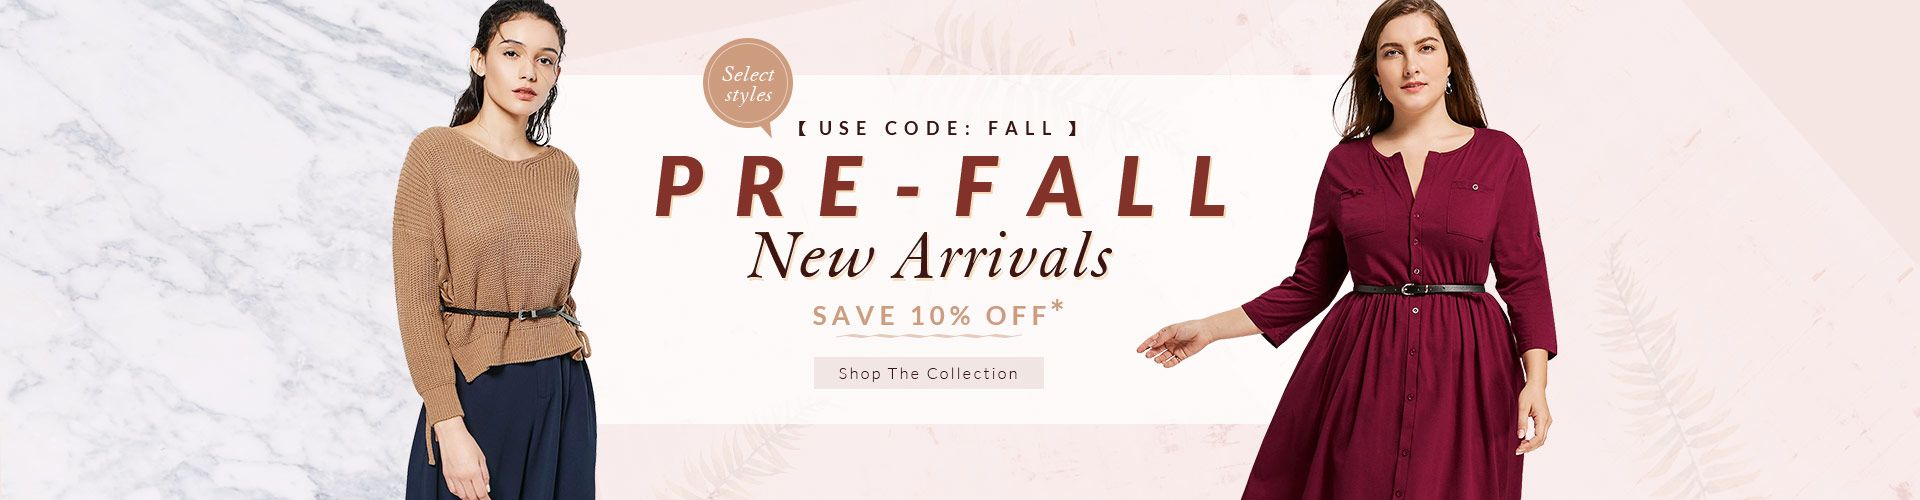 http://www.rosegal.com/promotion-pre-fall-new-arrivals-special-434.html?lkid=11306499